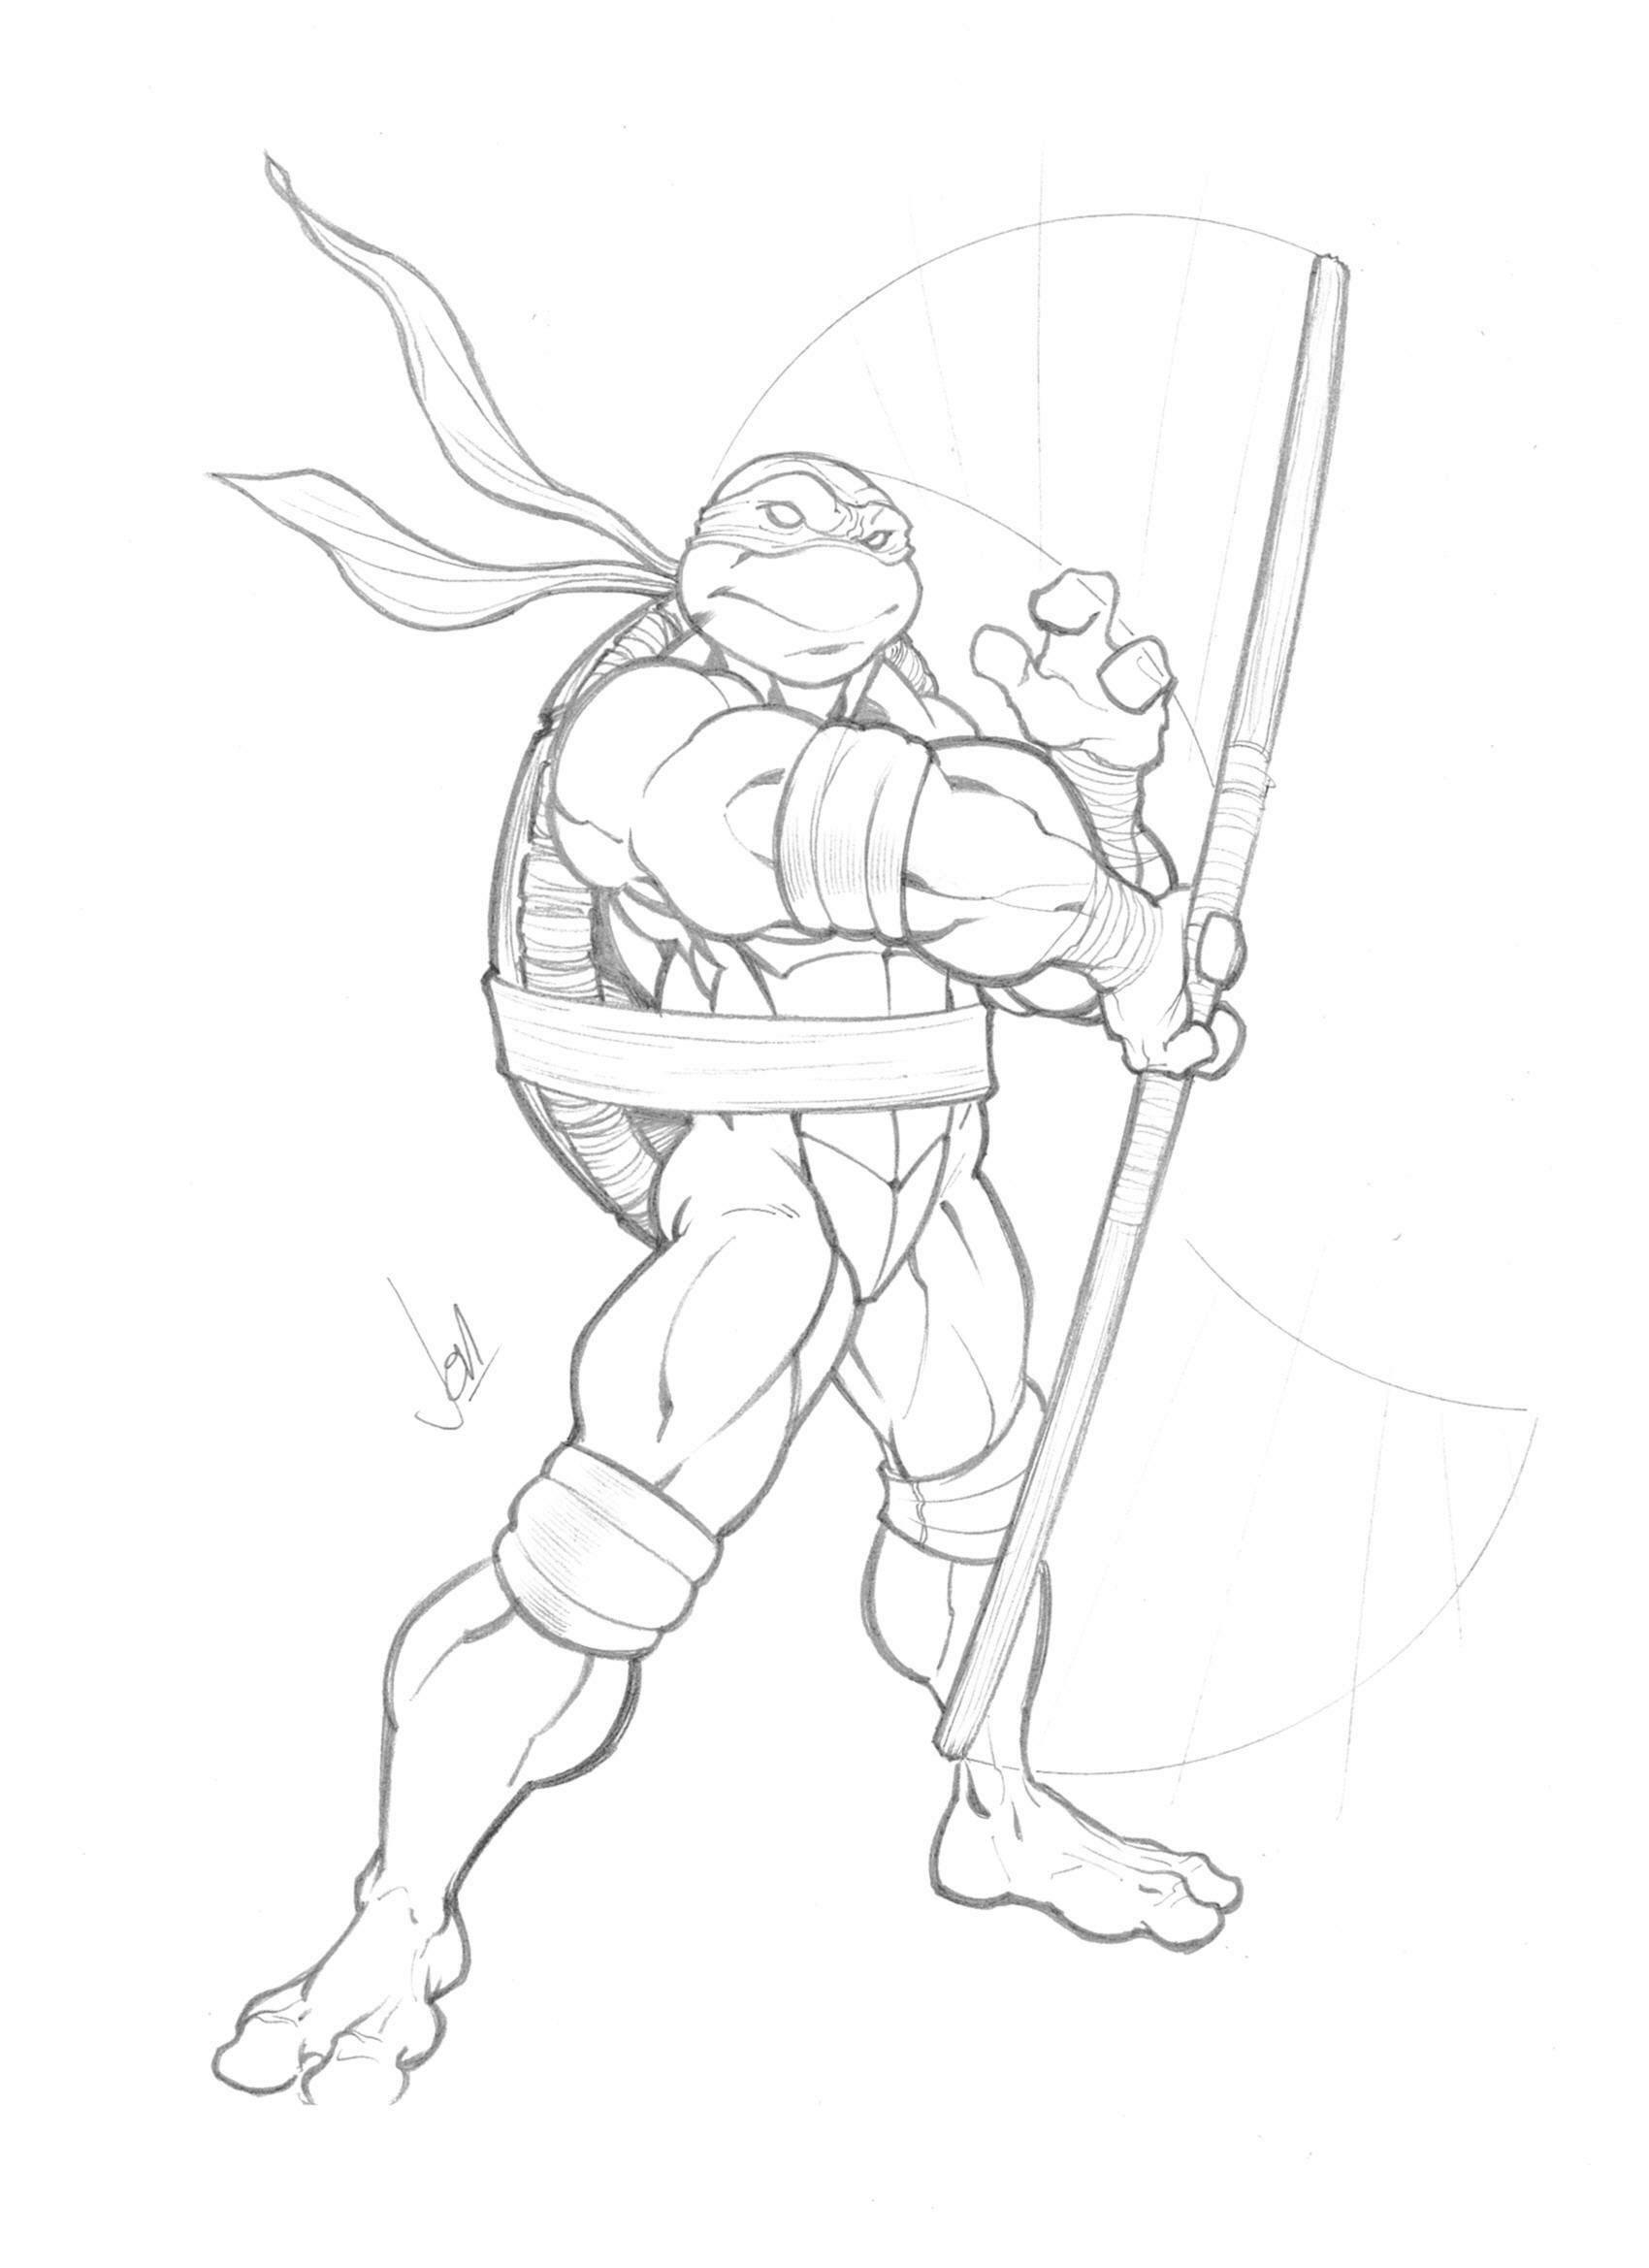 Donatello by jpm1023 on DeviantArt